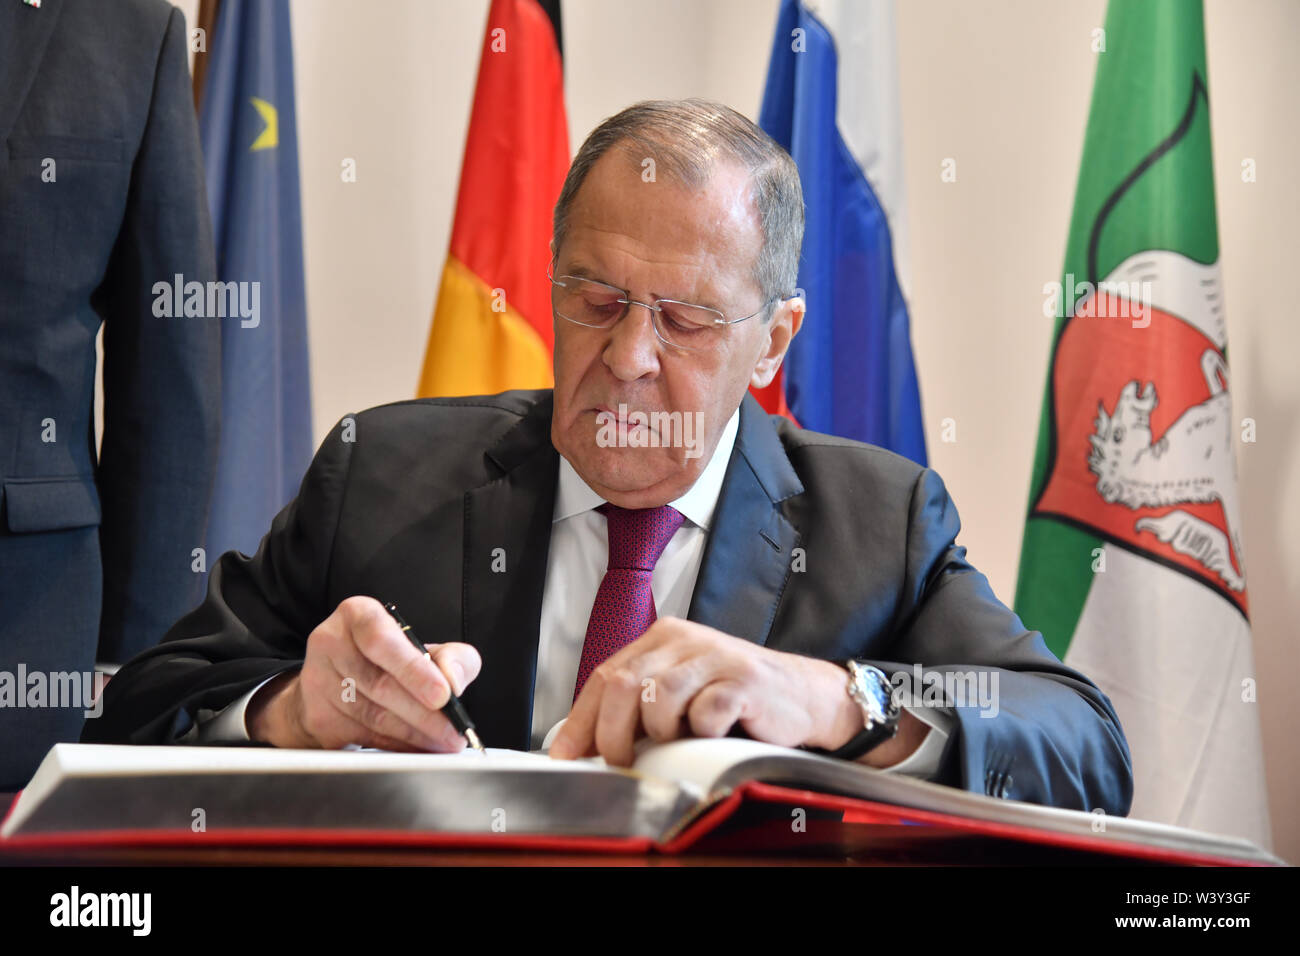 Bonn, Germany. 18th July, 2019. Sergei Lavrov, Foreign Minister of Russia, registers in the Golden Book at the beginning of the German-Russian Dialogue Forum 'Petersburg Dialogue'. In view of the ongoing political differences between Russia and Germany, North Rhine-Westphalia's Prime Minister Laschet has called for a continuation of the dialogue. Credit: Ina Fassbender/POOL AFP/dpa/Alamy Live News - Stock Image